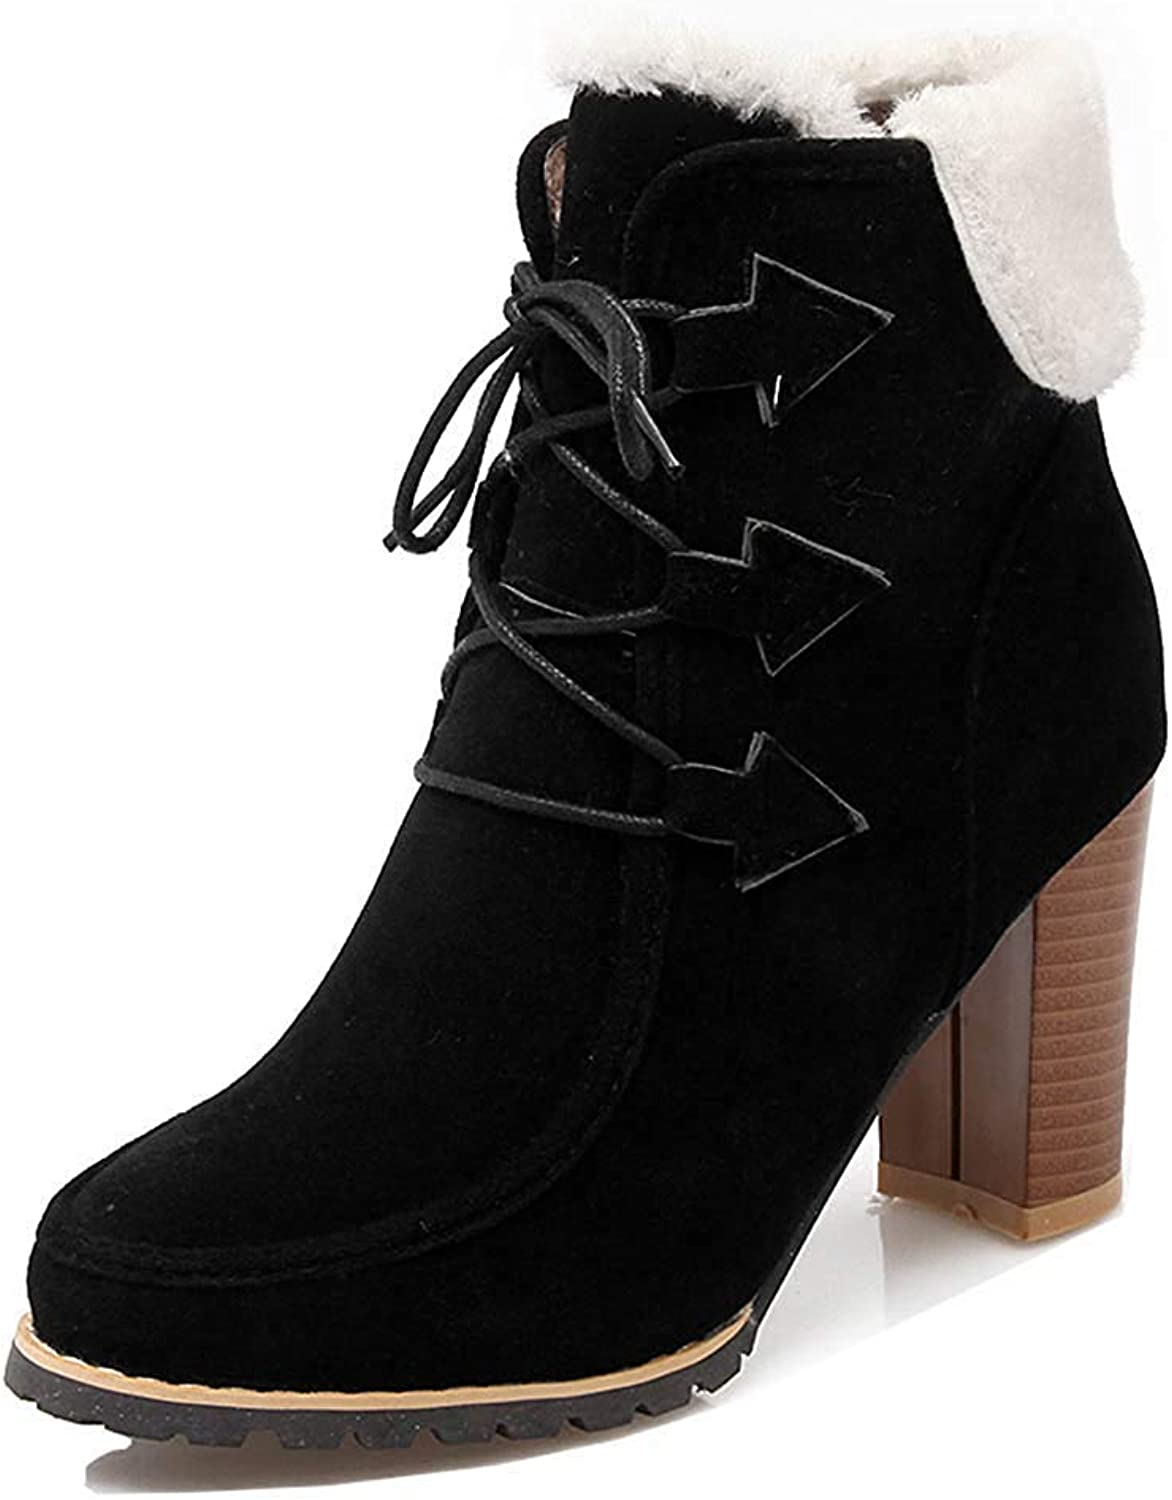 Unm Women's Stylish Cuffed Lace Up Round Toe Short Boots High Stacked Heel Ankle Booties